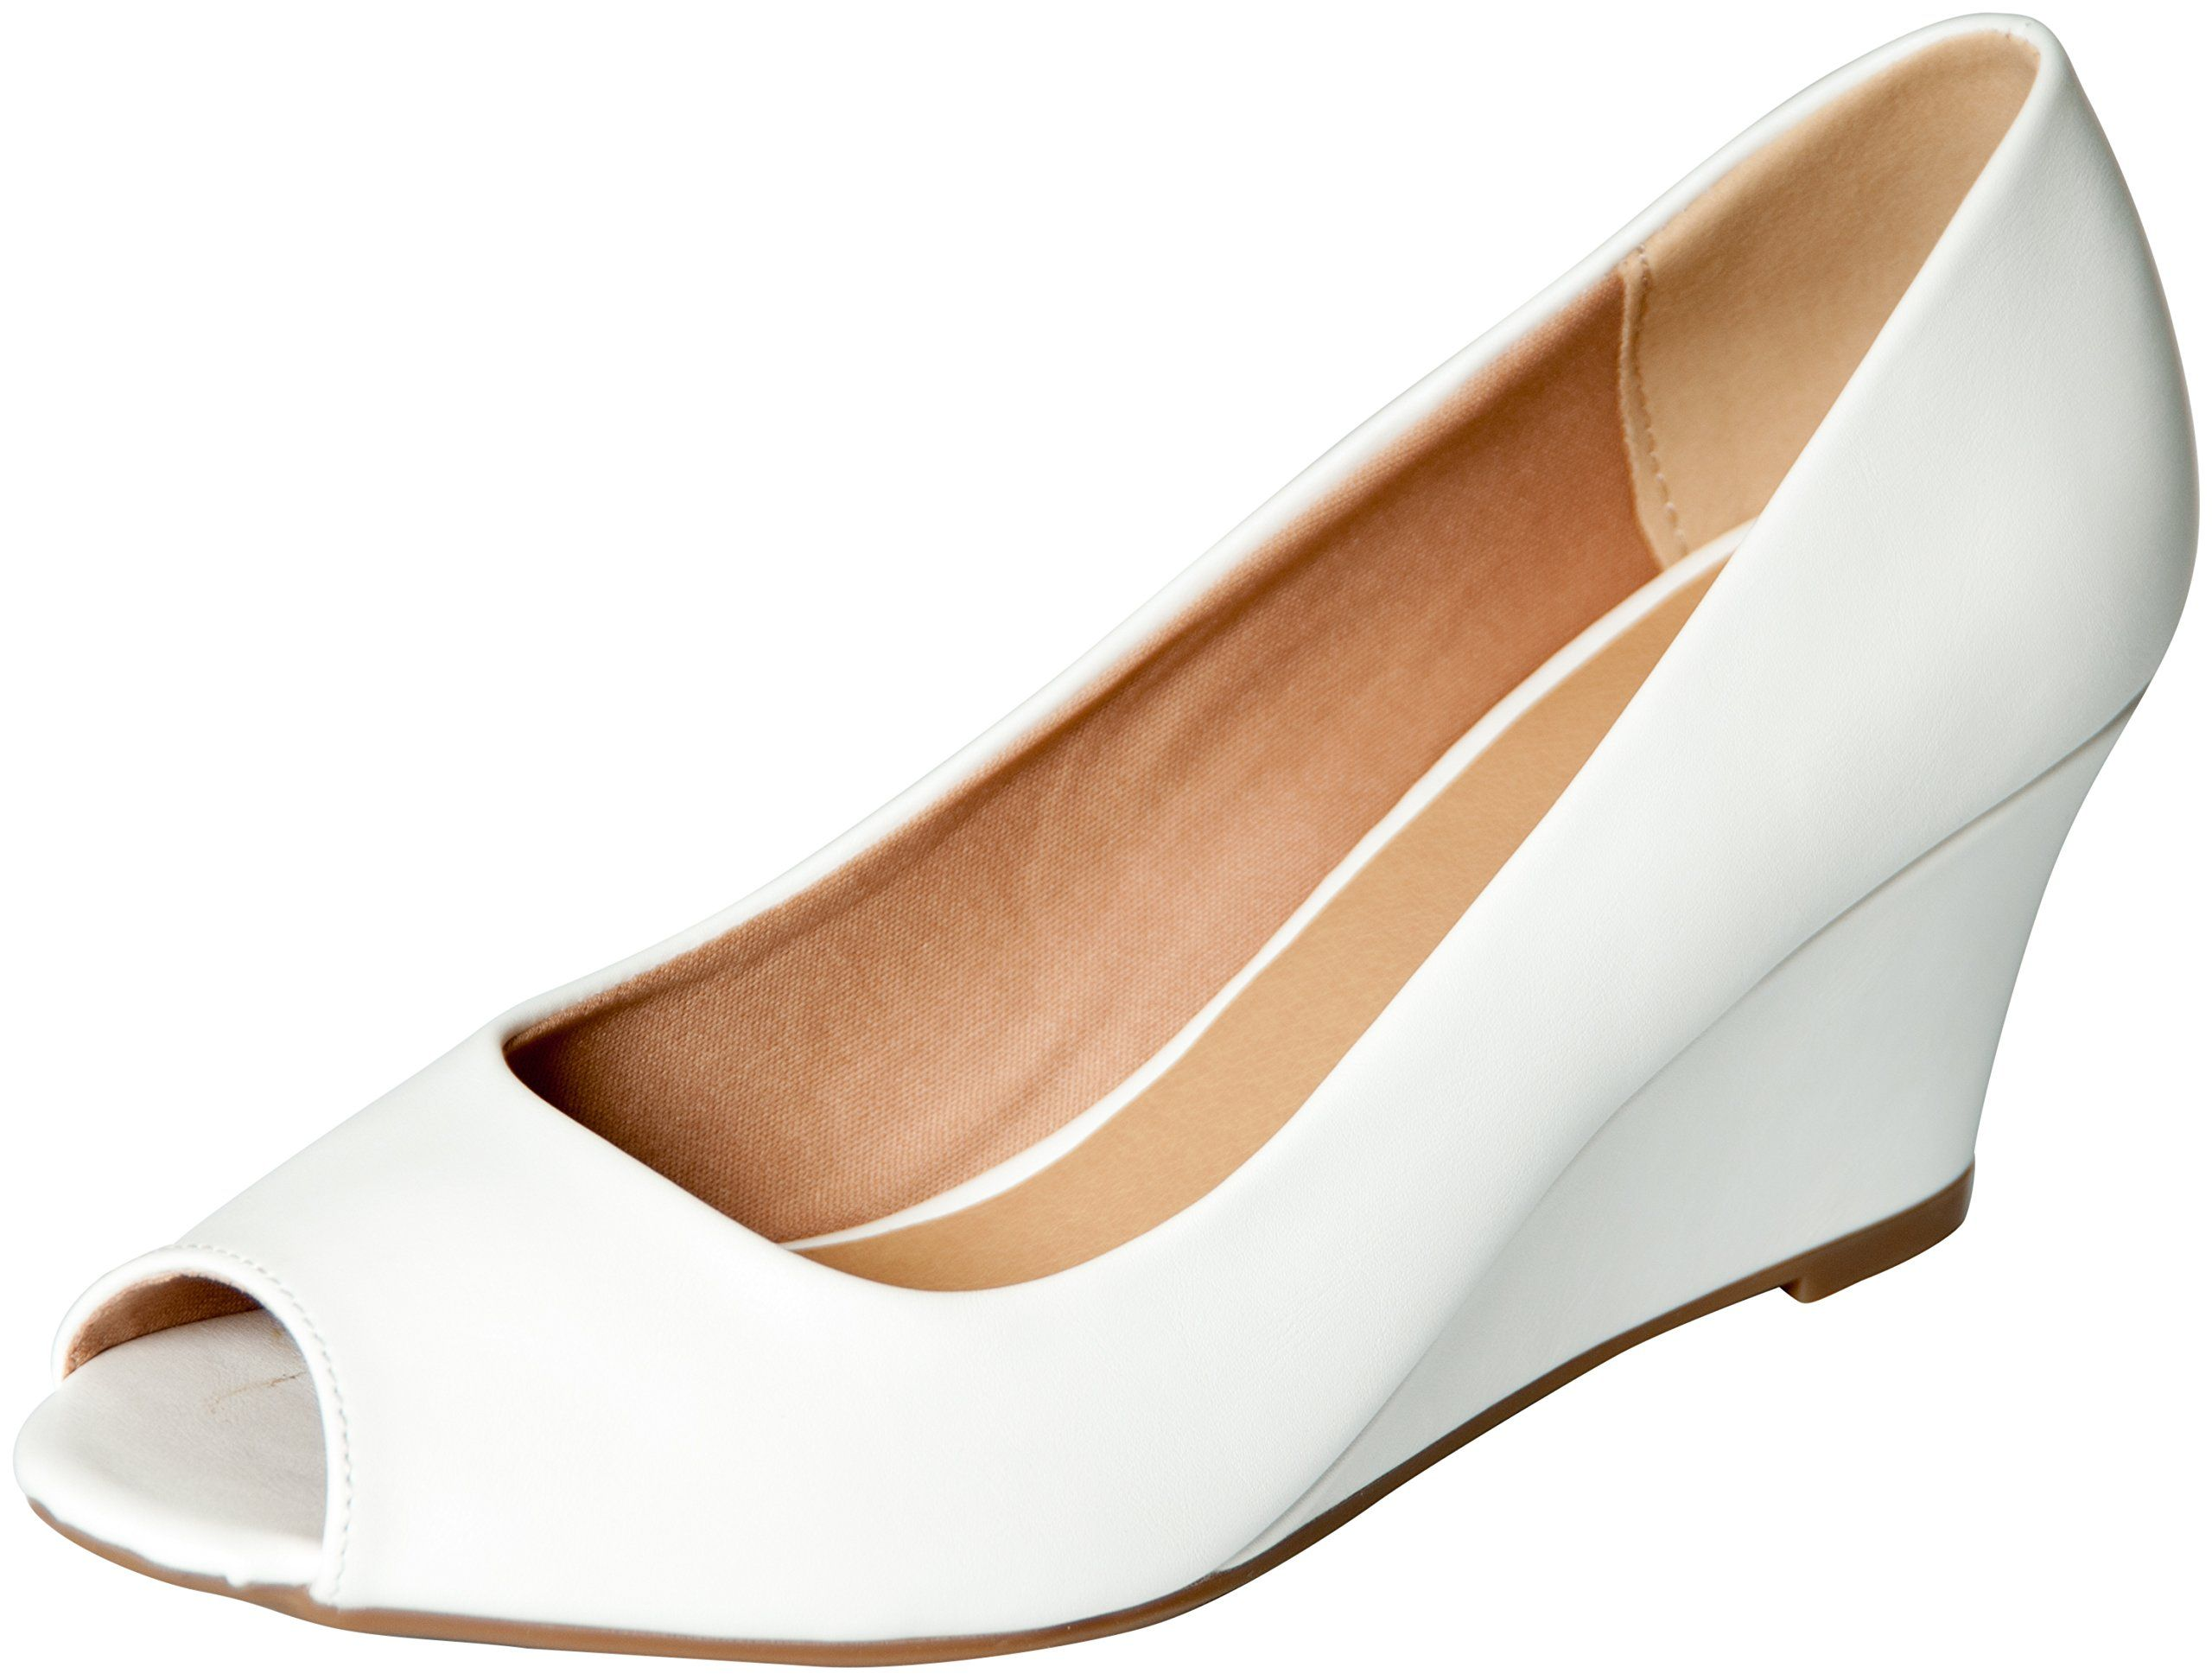 ad38a7fac Amazon.com: Forever Link Women's DORIS-23 Faux Leather Mid Heel Round Toe  Wedge Pumps: Clothing